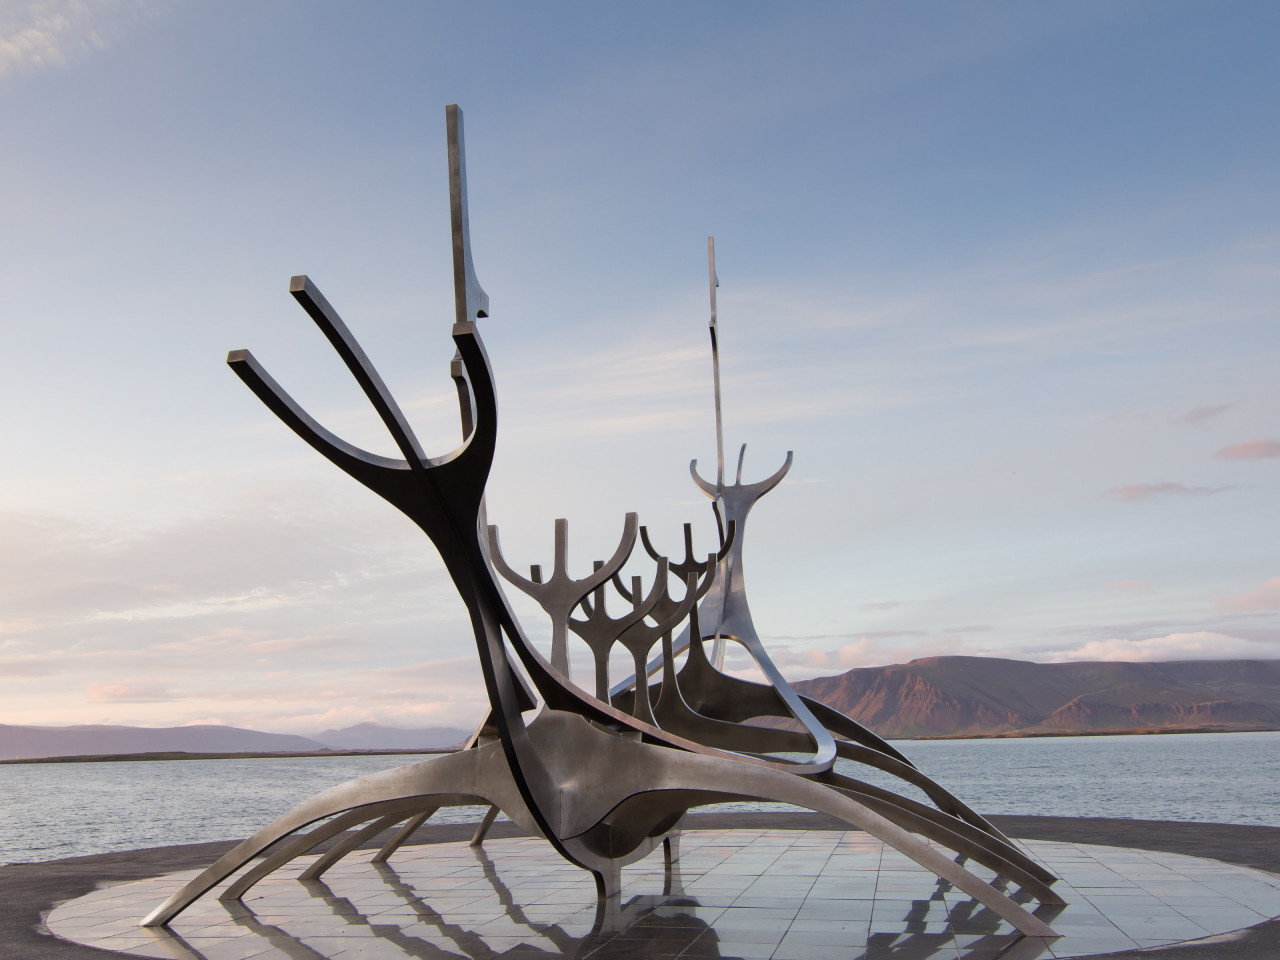 The Sun Voyager from Reykjavik, Iceland | 1280x960 wallpaper